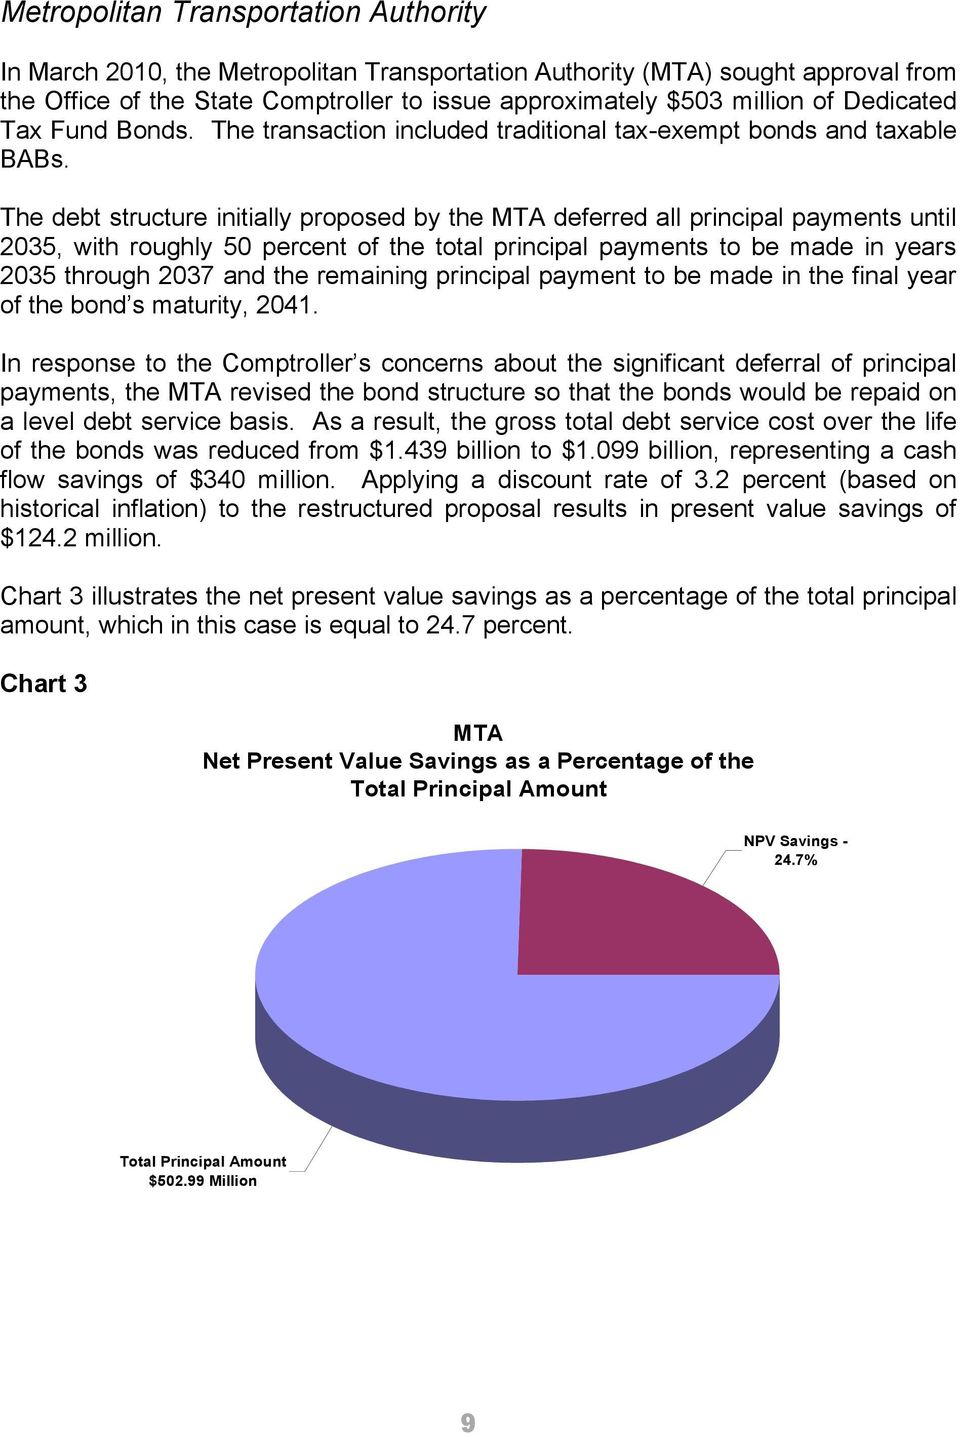 The debt structure initially proposed by the MTA deferred all principal payments until 2035, with roughly 50 percent of the total principal payments to be made in years 2035 through 2037 and the